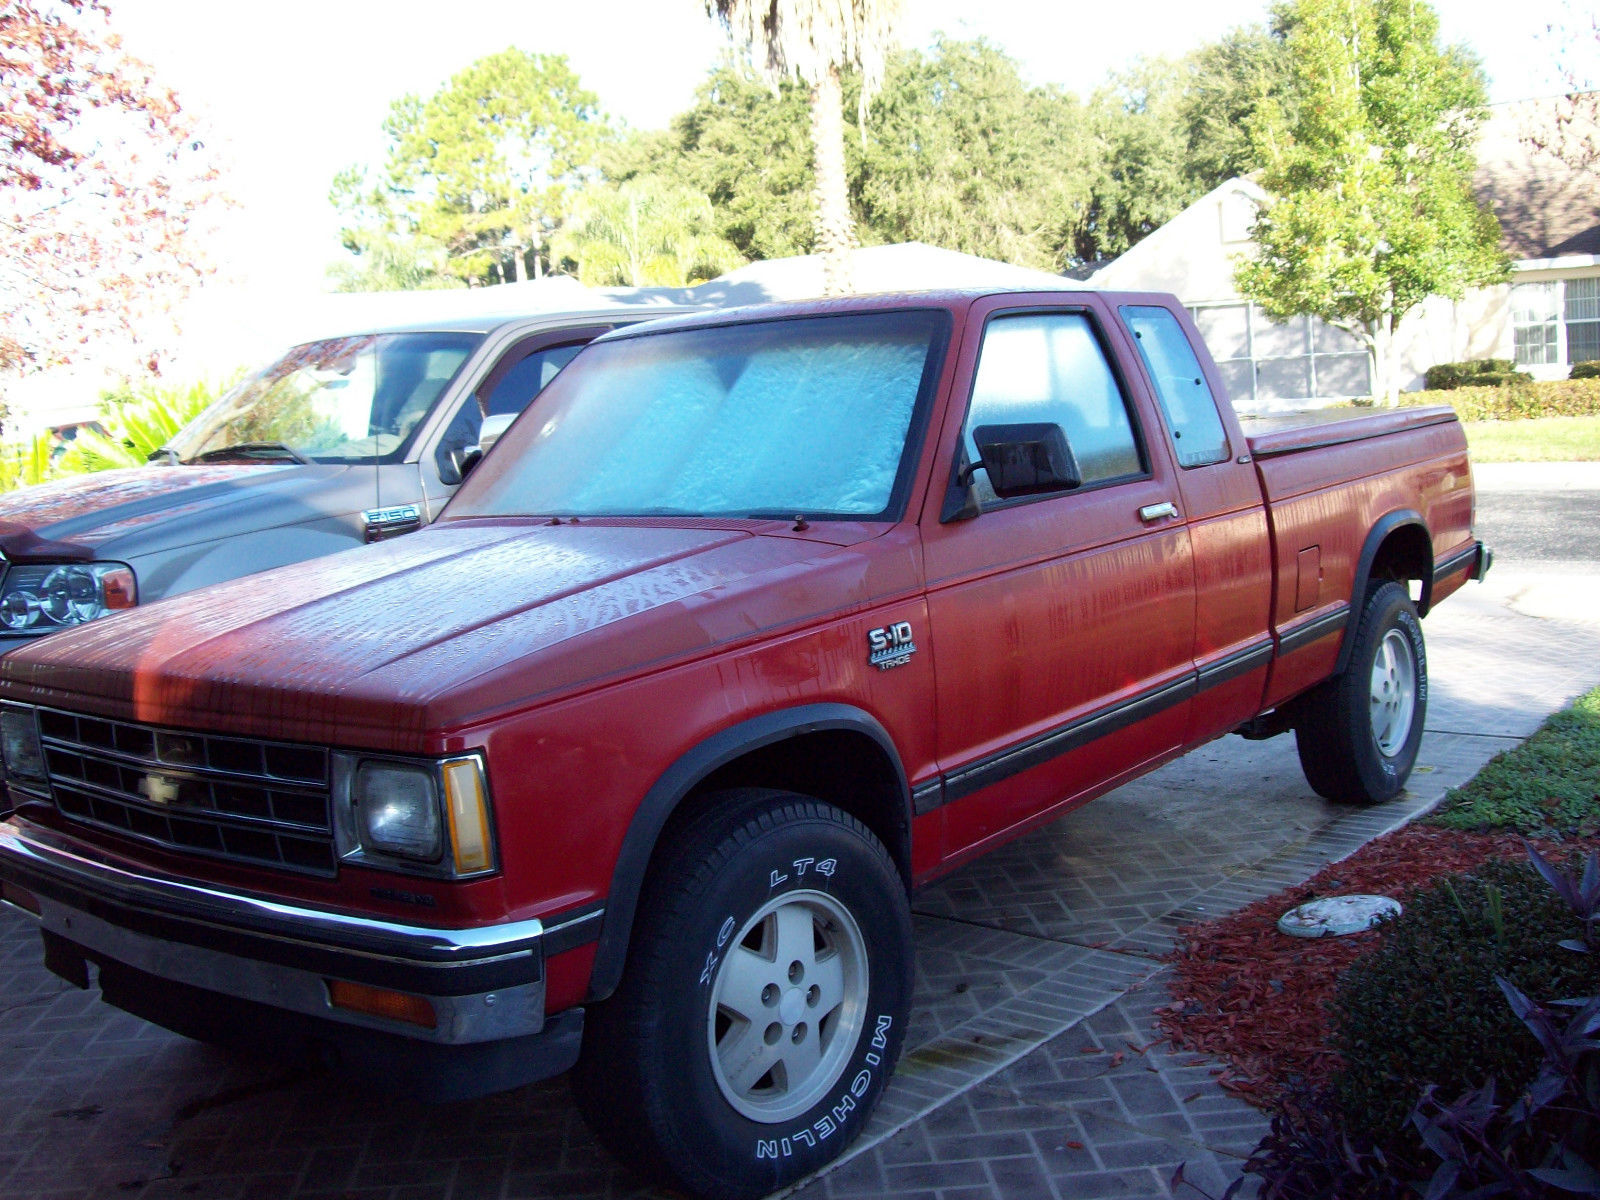 s10 extended cab 4x4 tahoe 1984 classic chevrolet s 10 1984 for sale. Black Bedroom Furniture Sets. Home Design Ideas